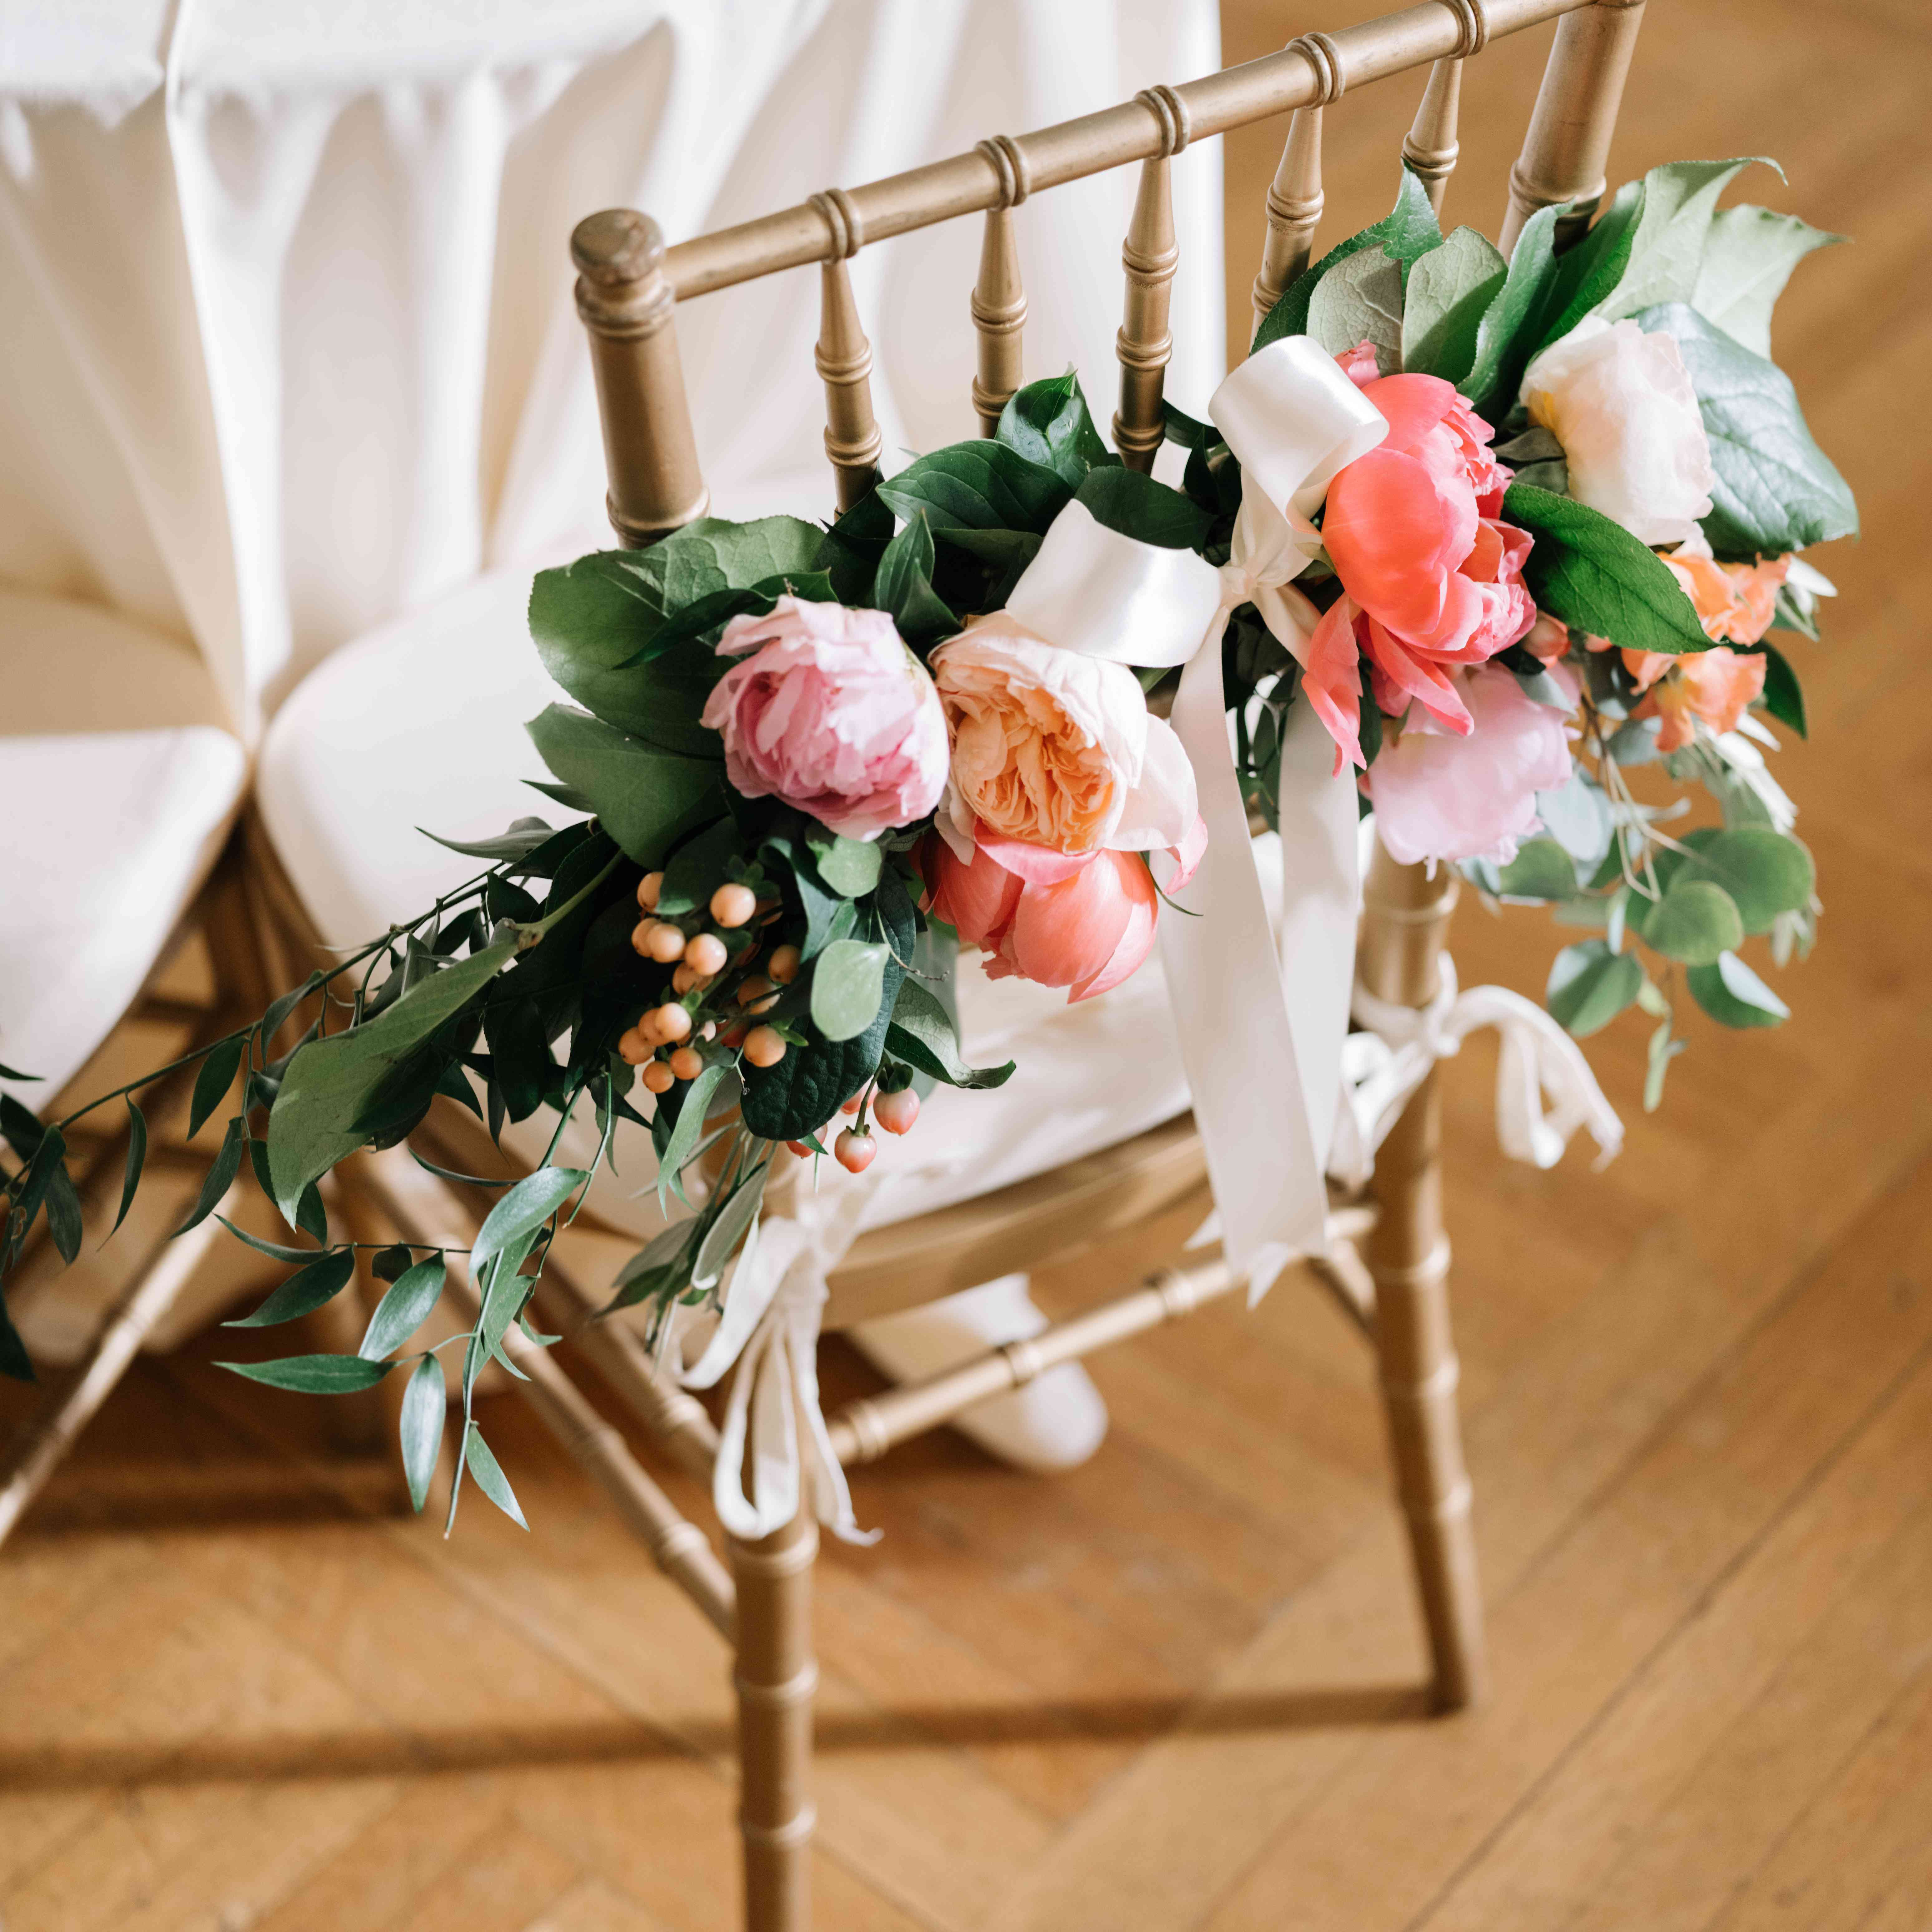 flowers on chair